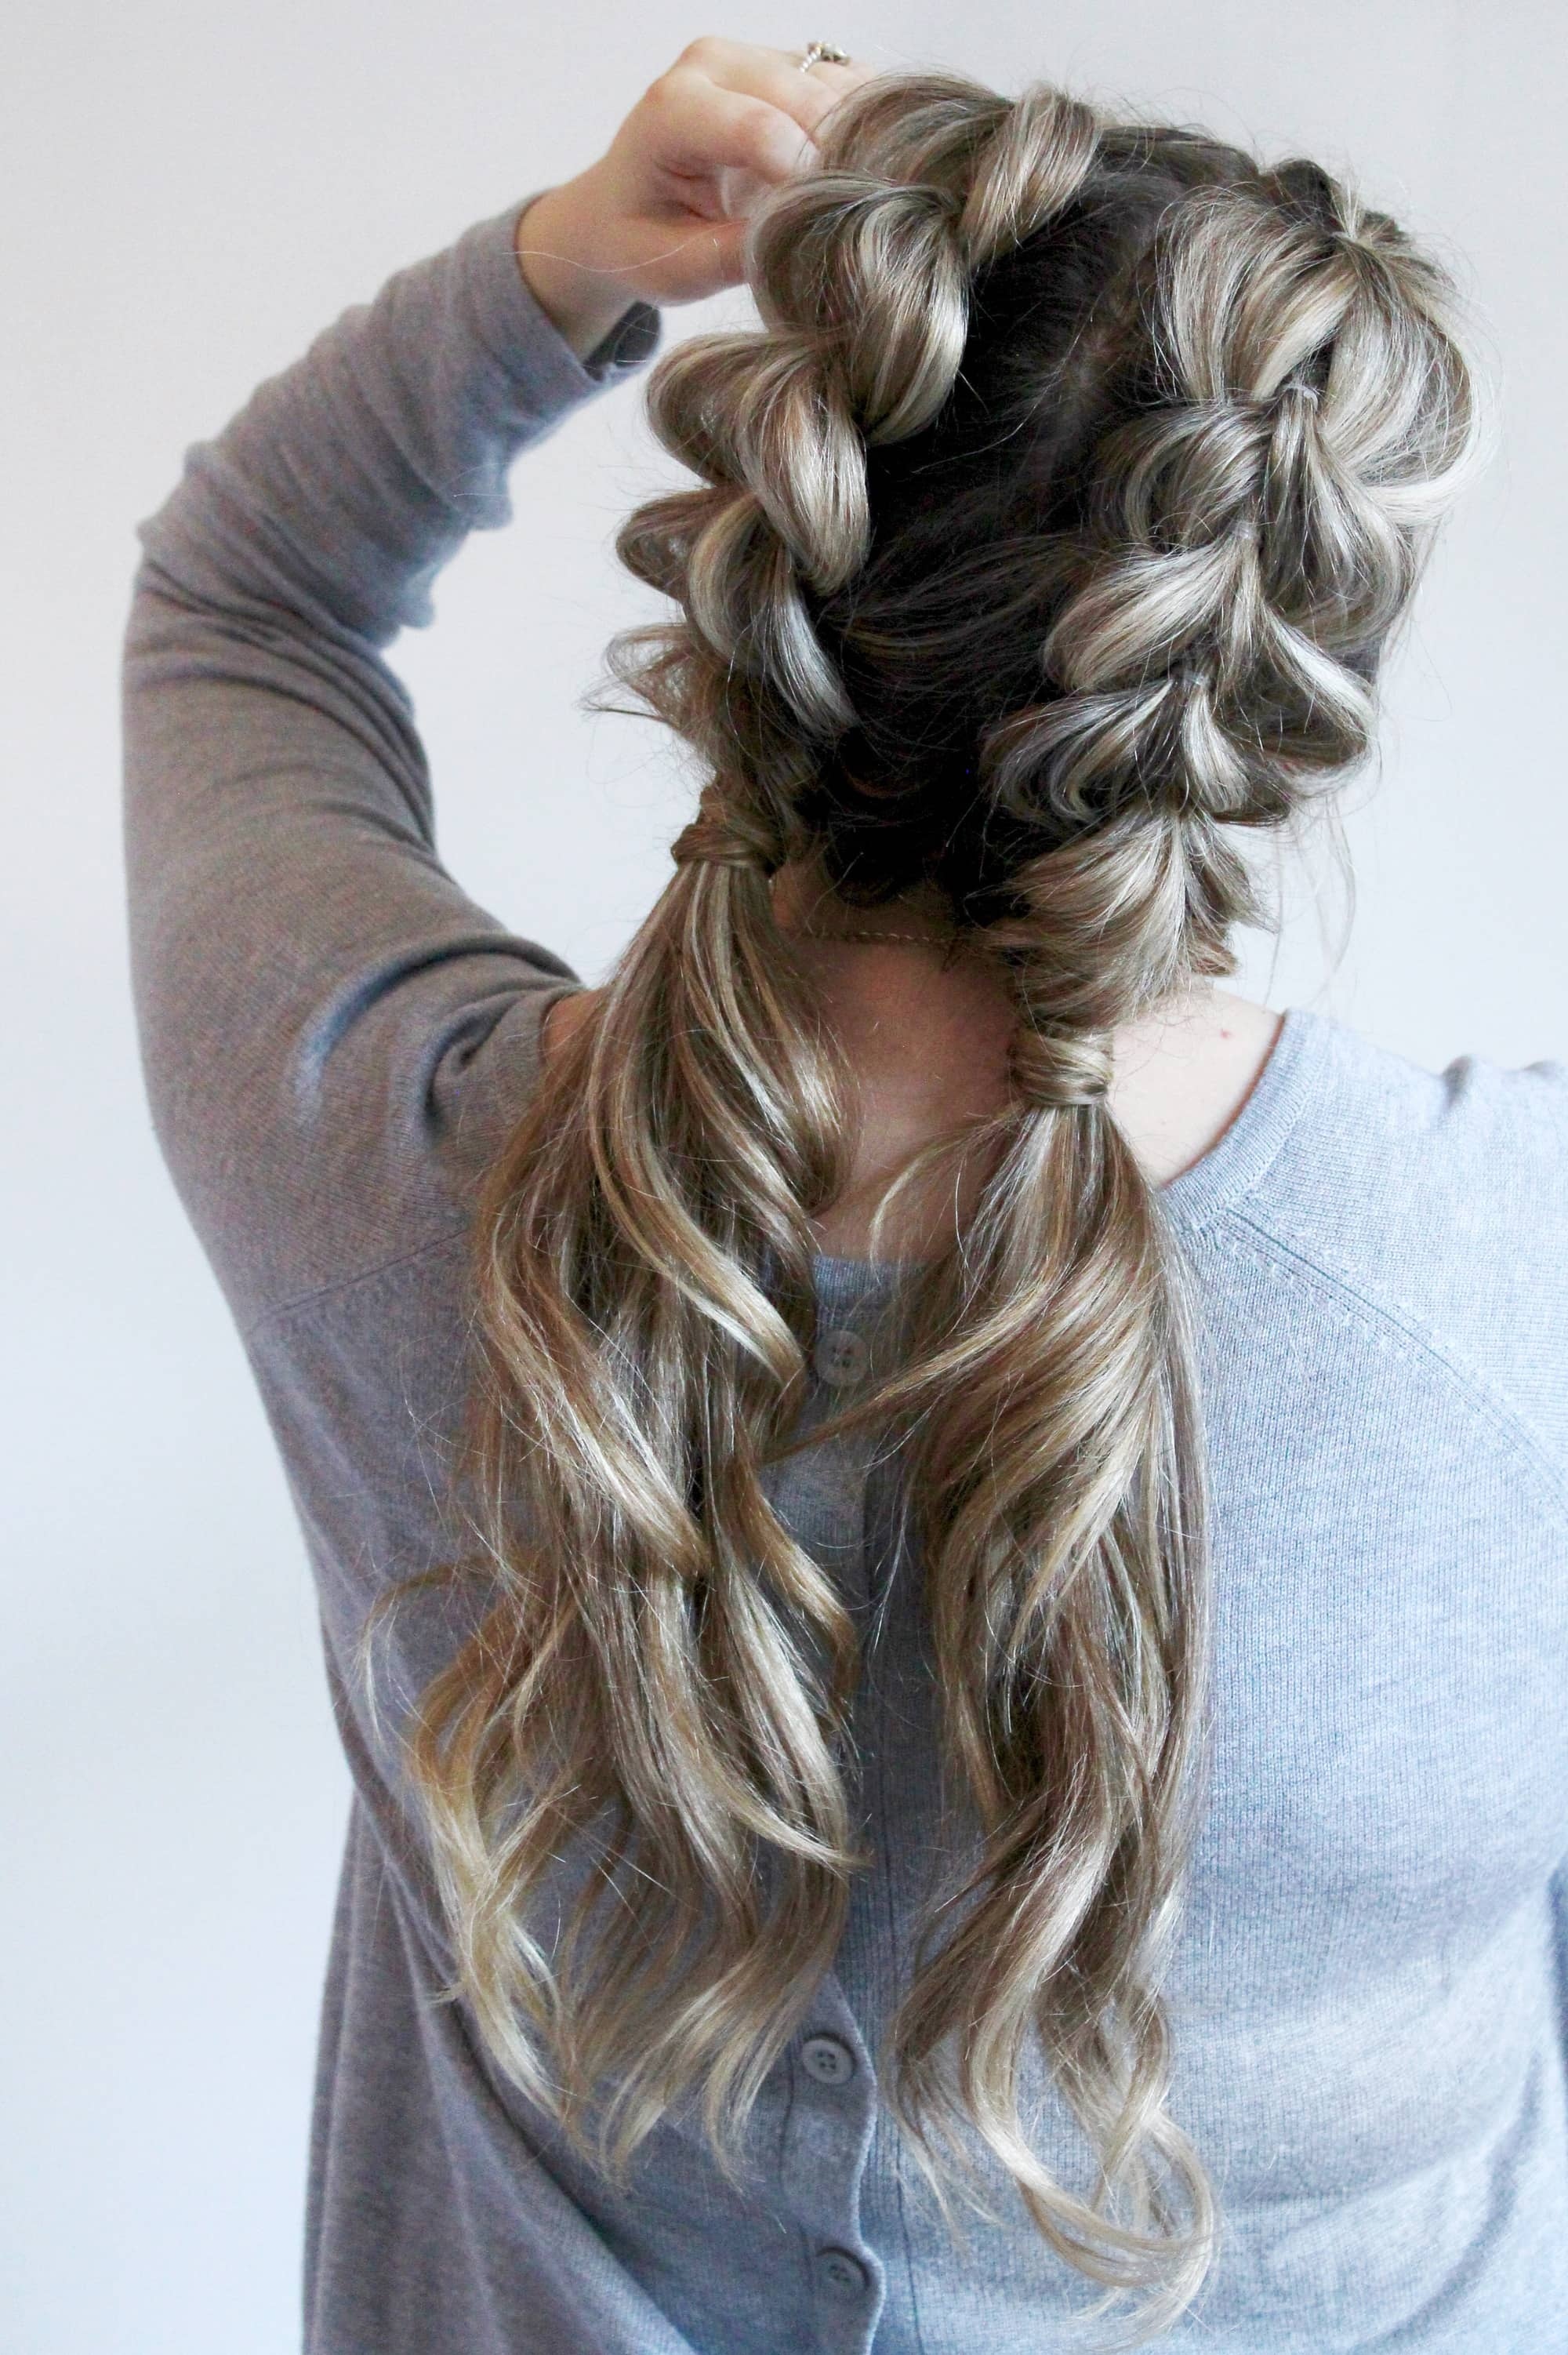 Jumbo Pull Through Braid Pigtails Tutorial Life On Waller